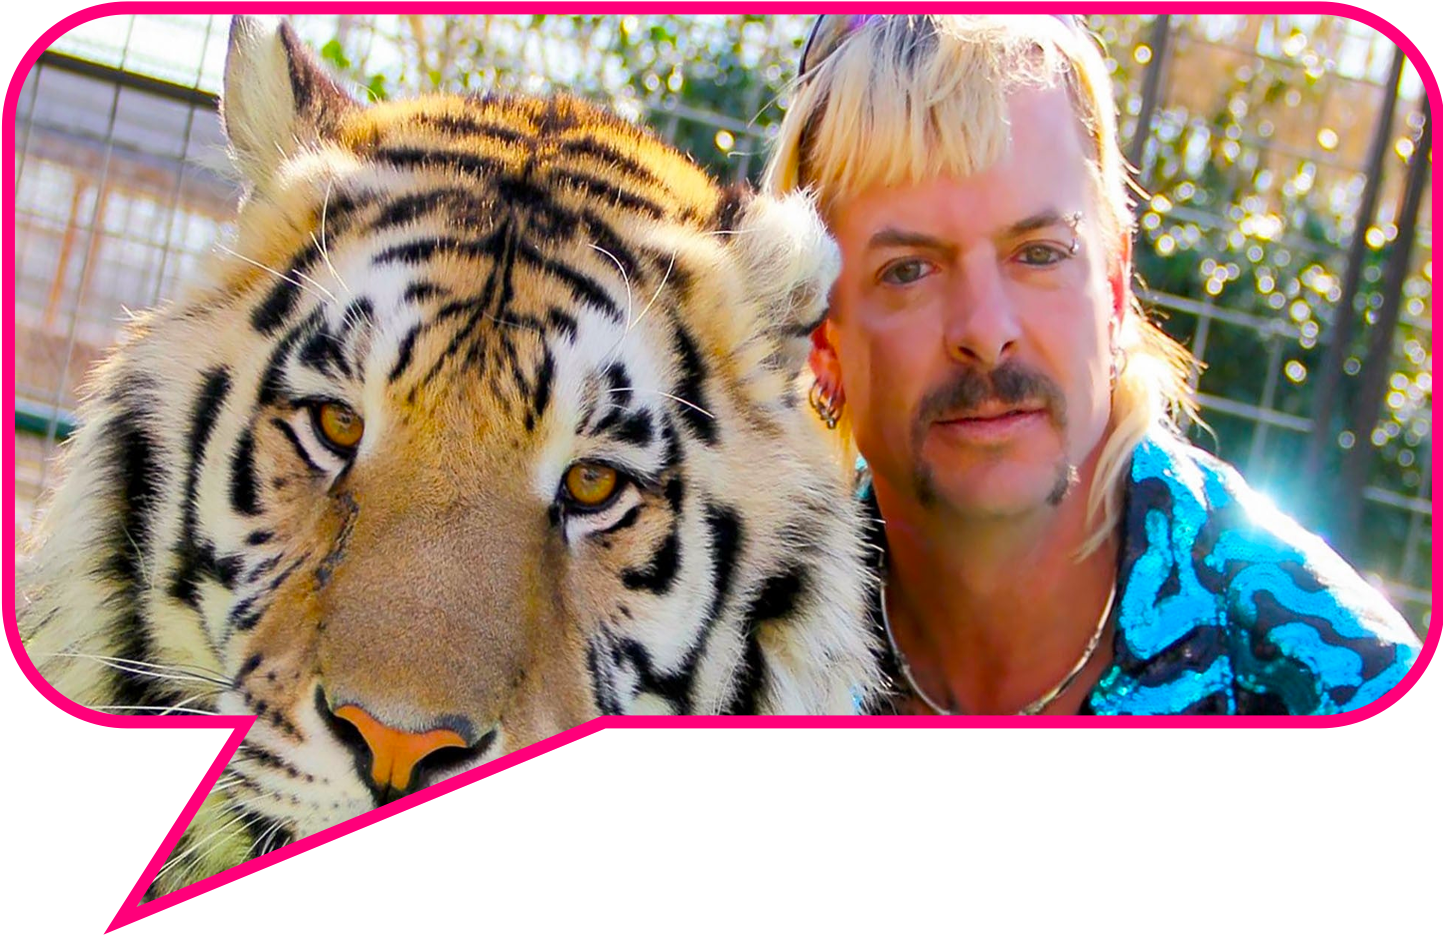 Image of Tiger King in pink speaking bubble